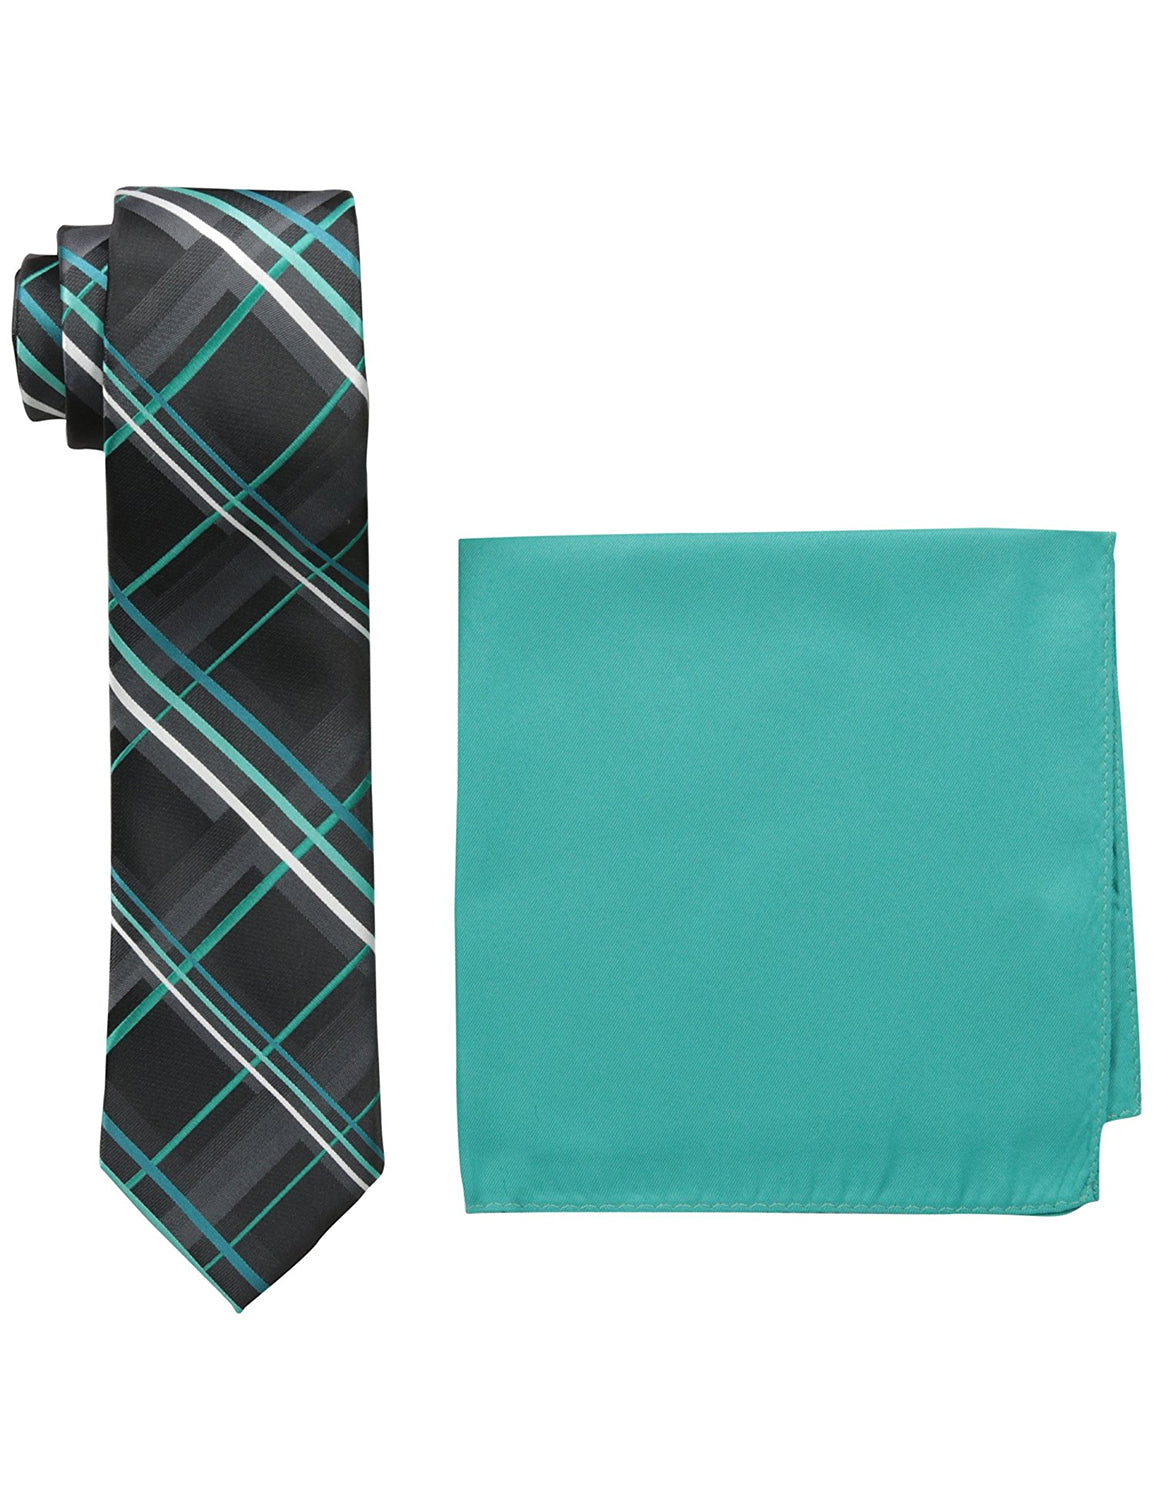 Twill Textured Plaid Neck Tie and Solid Pocket Square